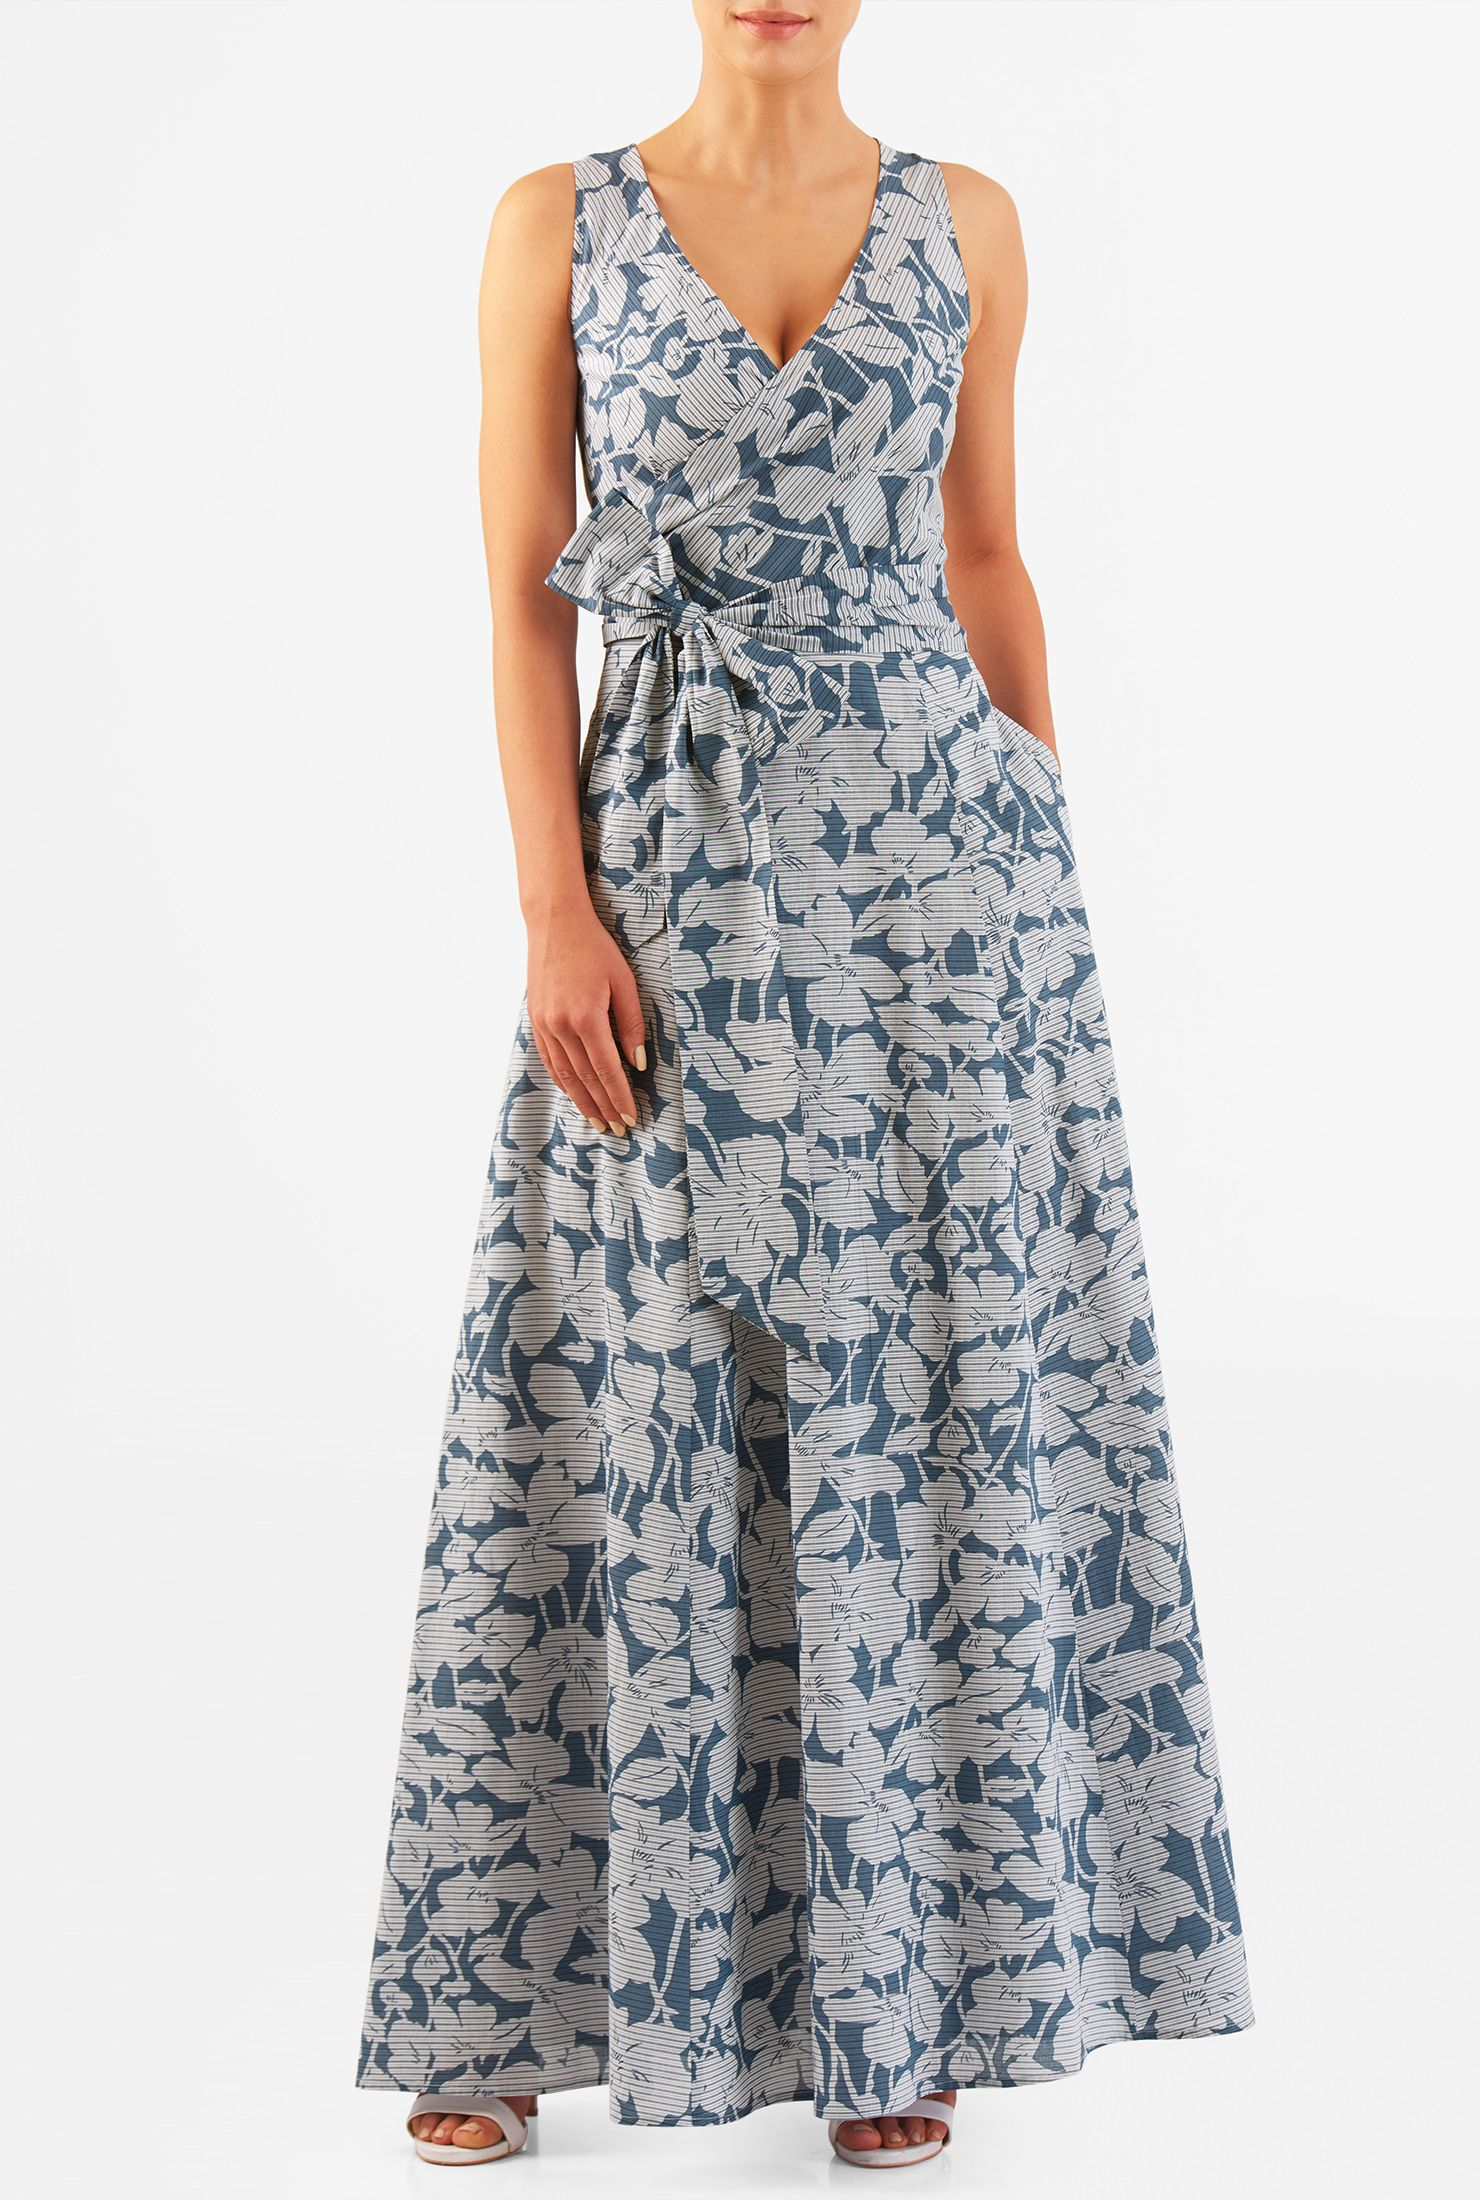 Designer fashion dresses at affordable prices be the first with